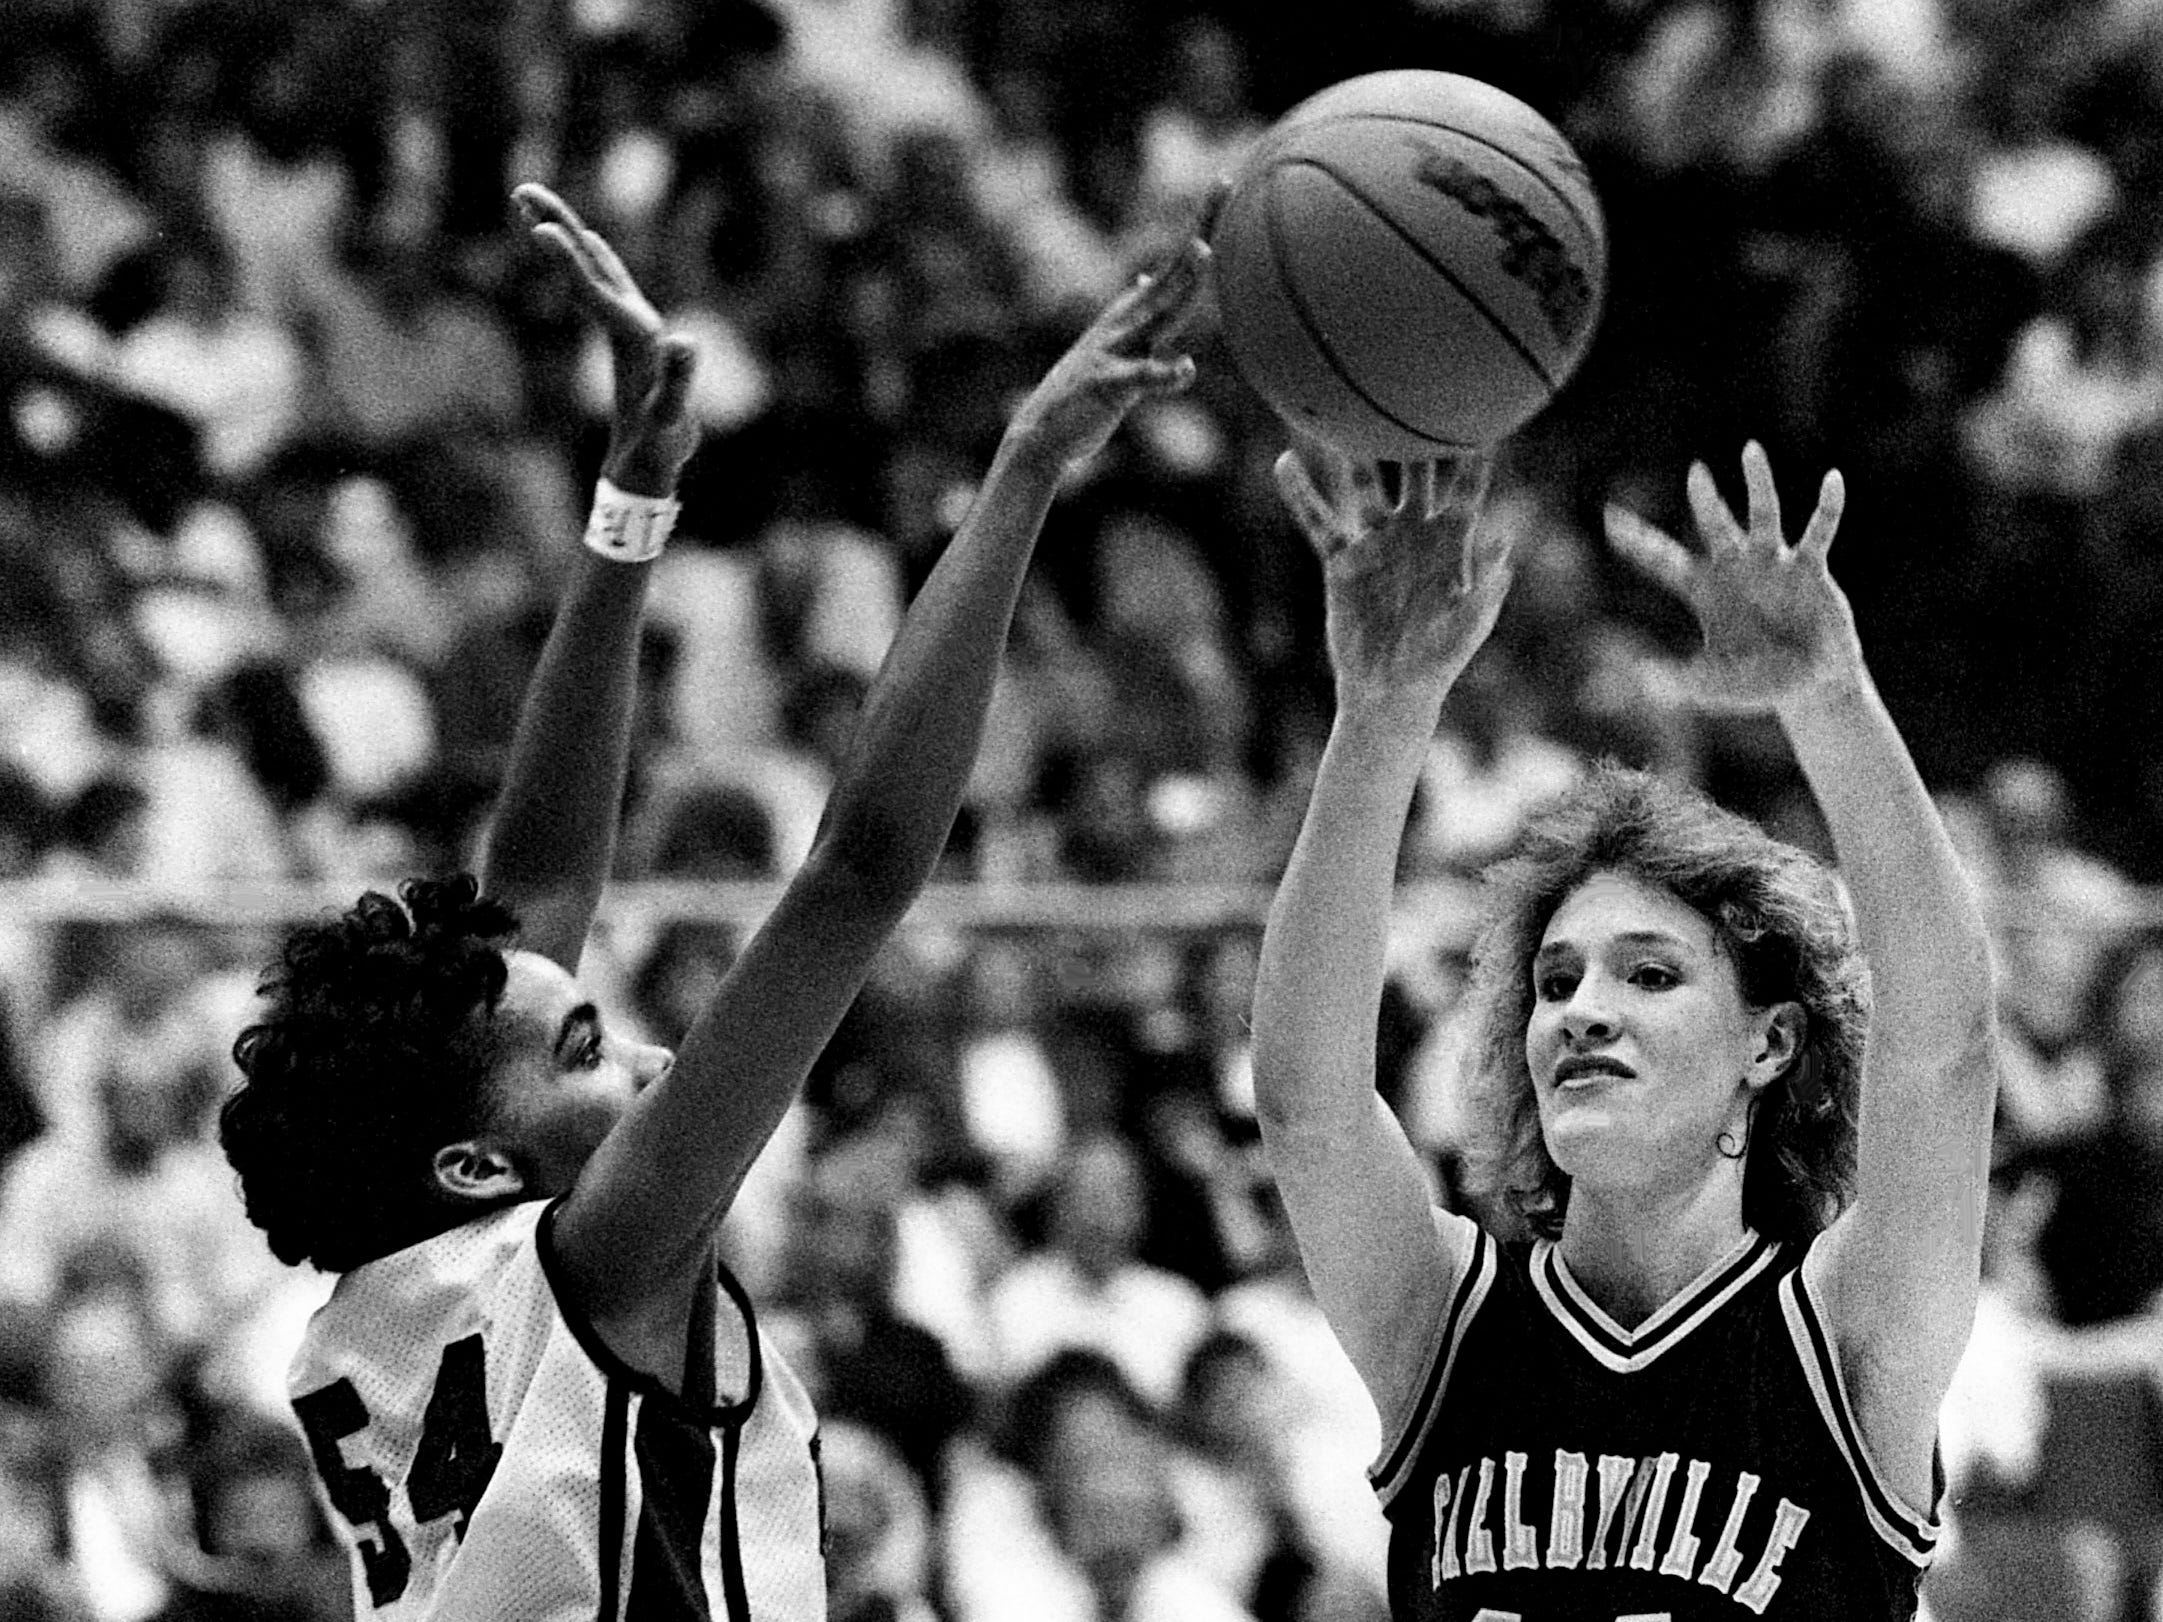 Shelbyville High junior Misty Lamb (14) passes over Oak Ridge High's Cynthia Dunnigan in the Golden Eaglettes' 55-47 victory over Oak Ridge to win the TSSAA Class AAA State Tournament title at MTSU's Murphy Center in Murfreesboro on March 11, 1989. The USA Today No. 1 nationally ranked Shelbyville finished with a 36-0 record and won their second state title in four years.